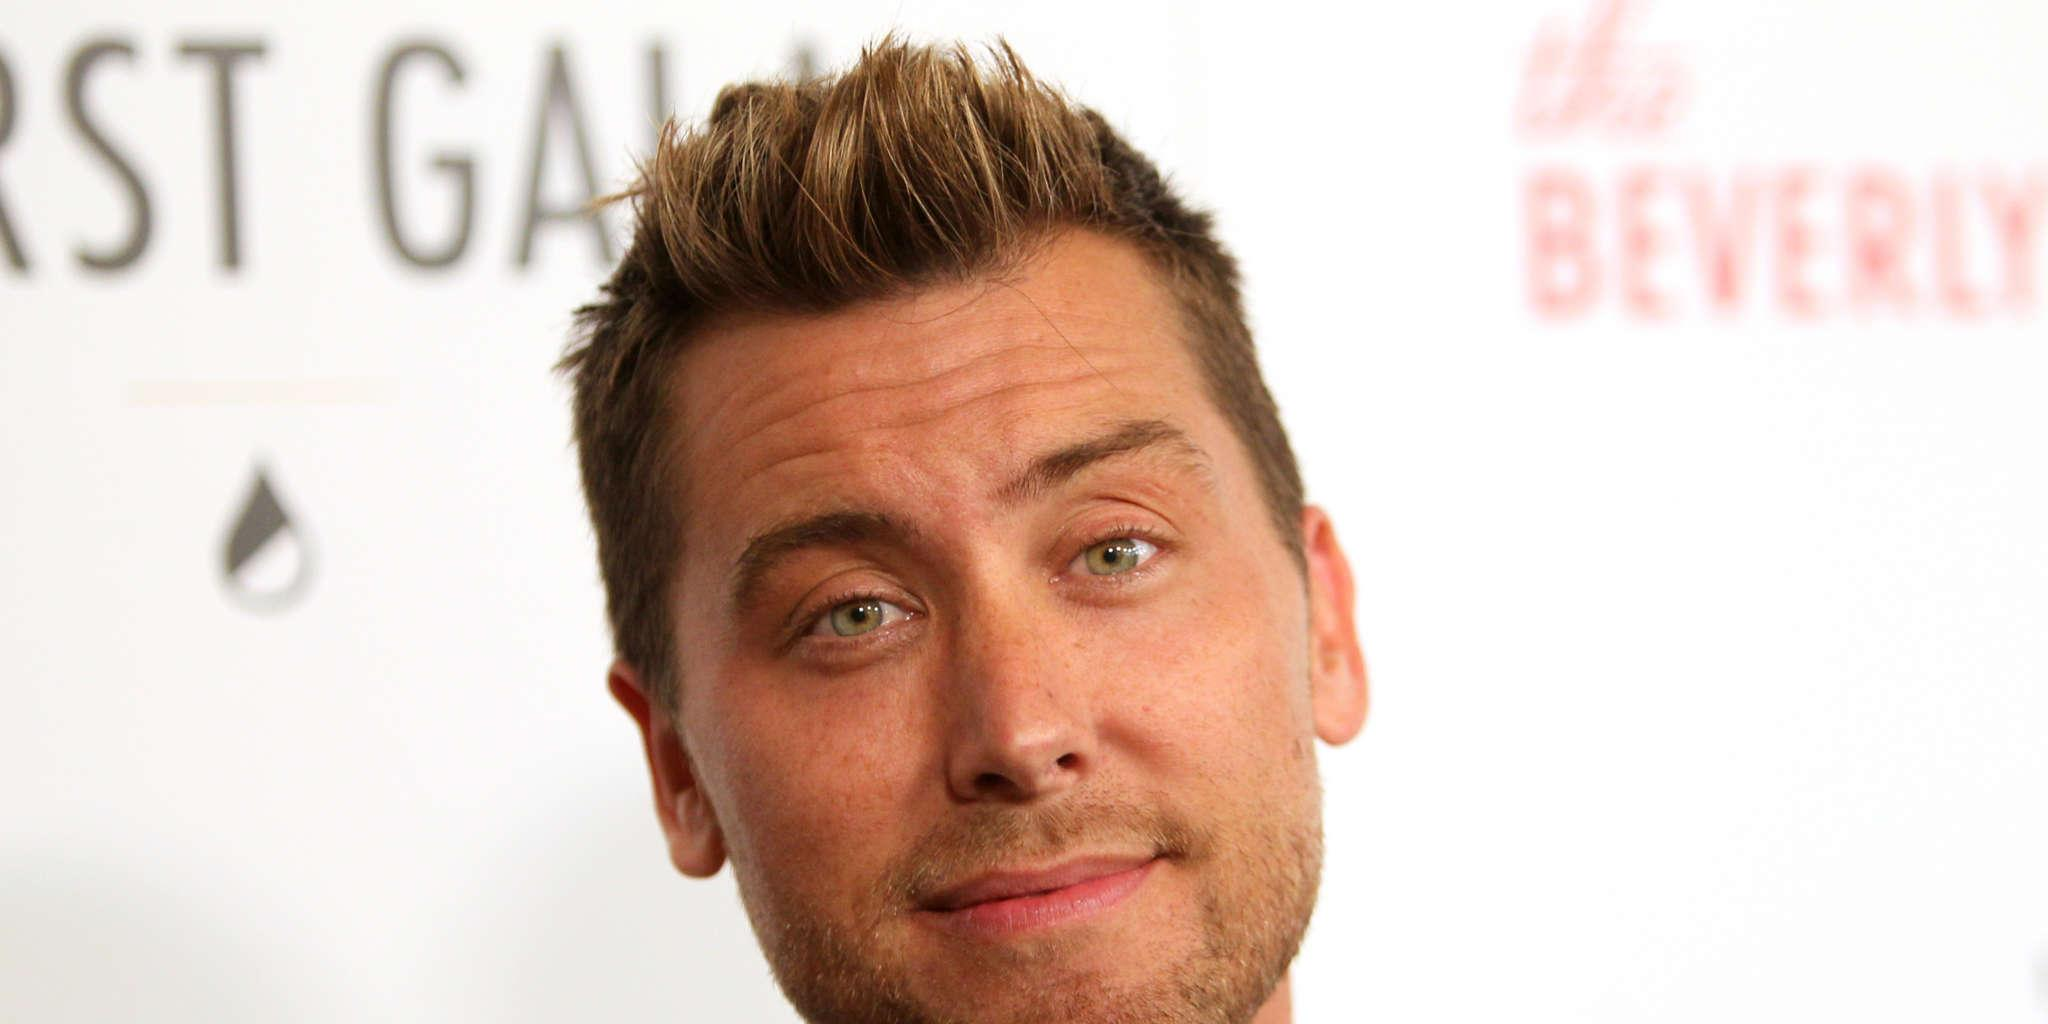 Lance Bass Opens Up About His Surrogacy Journey After Miscarriage A Few Months Ago - Says He's Still Hopeful Despite Many Struggles And Failed Attempts!